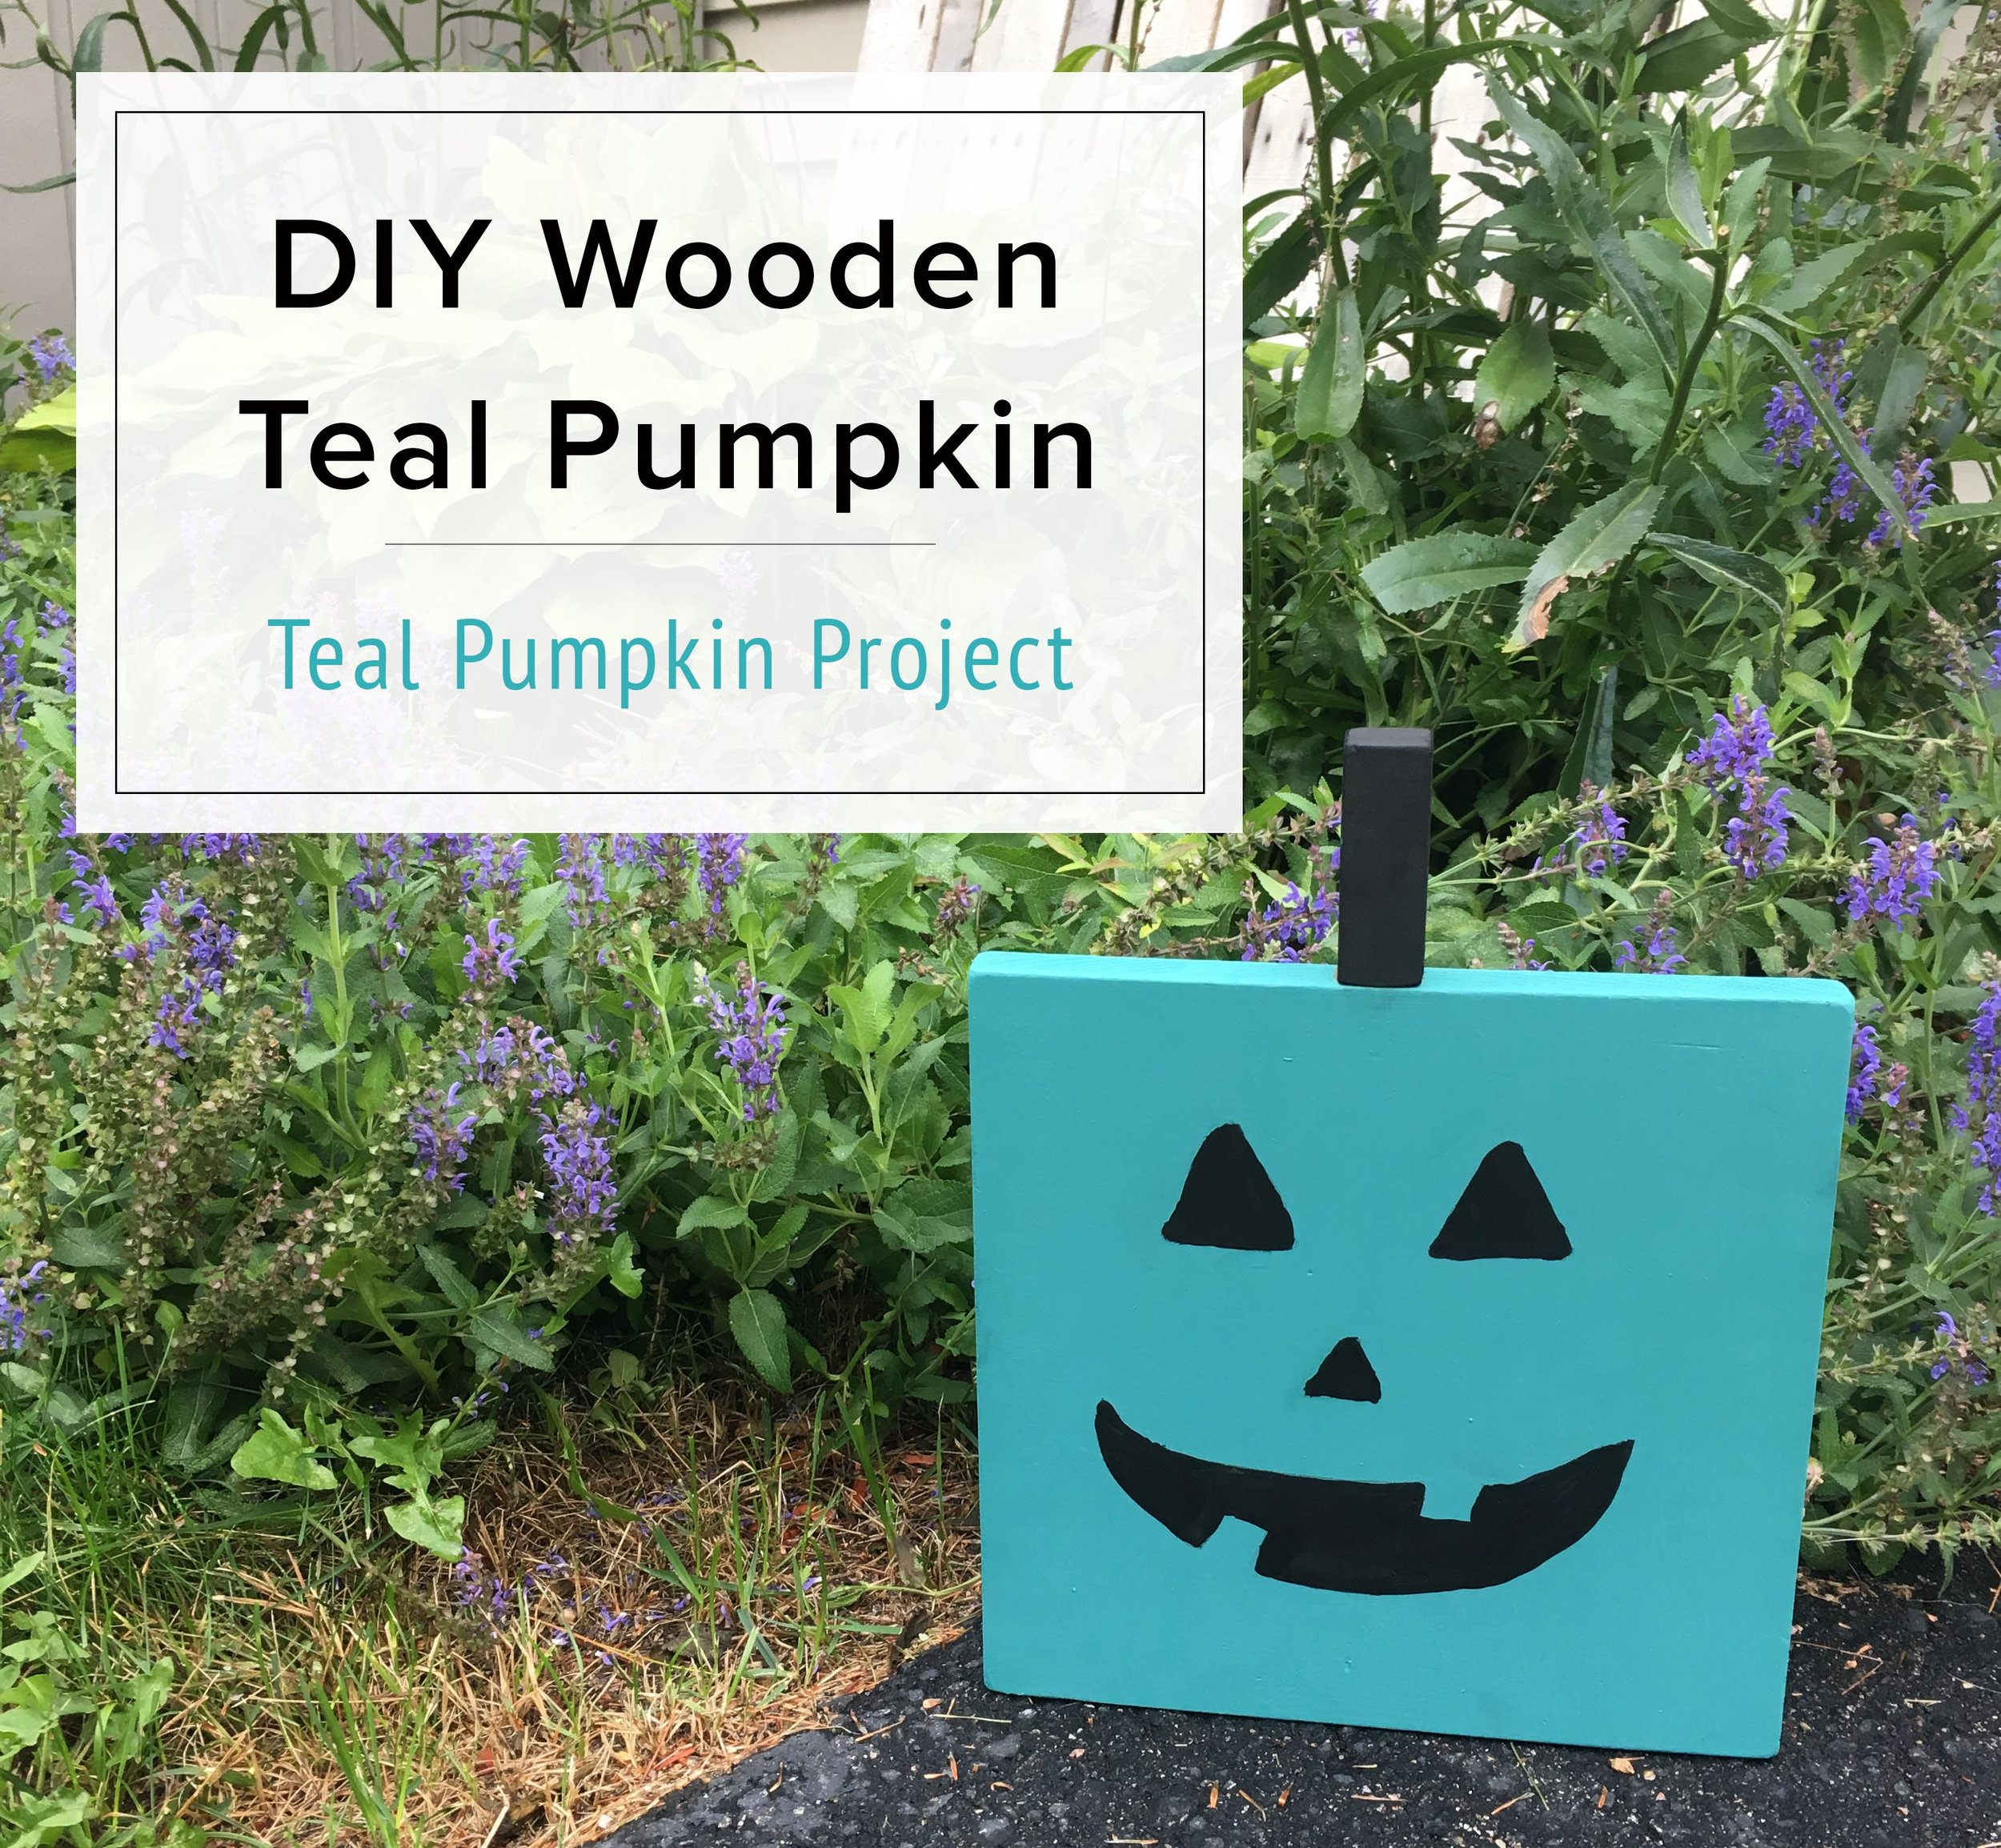 DIY Wooden Teal Pumpkin | Teal Pumpkin Project